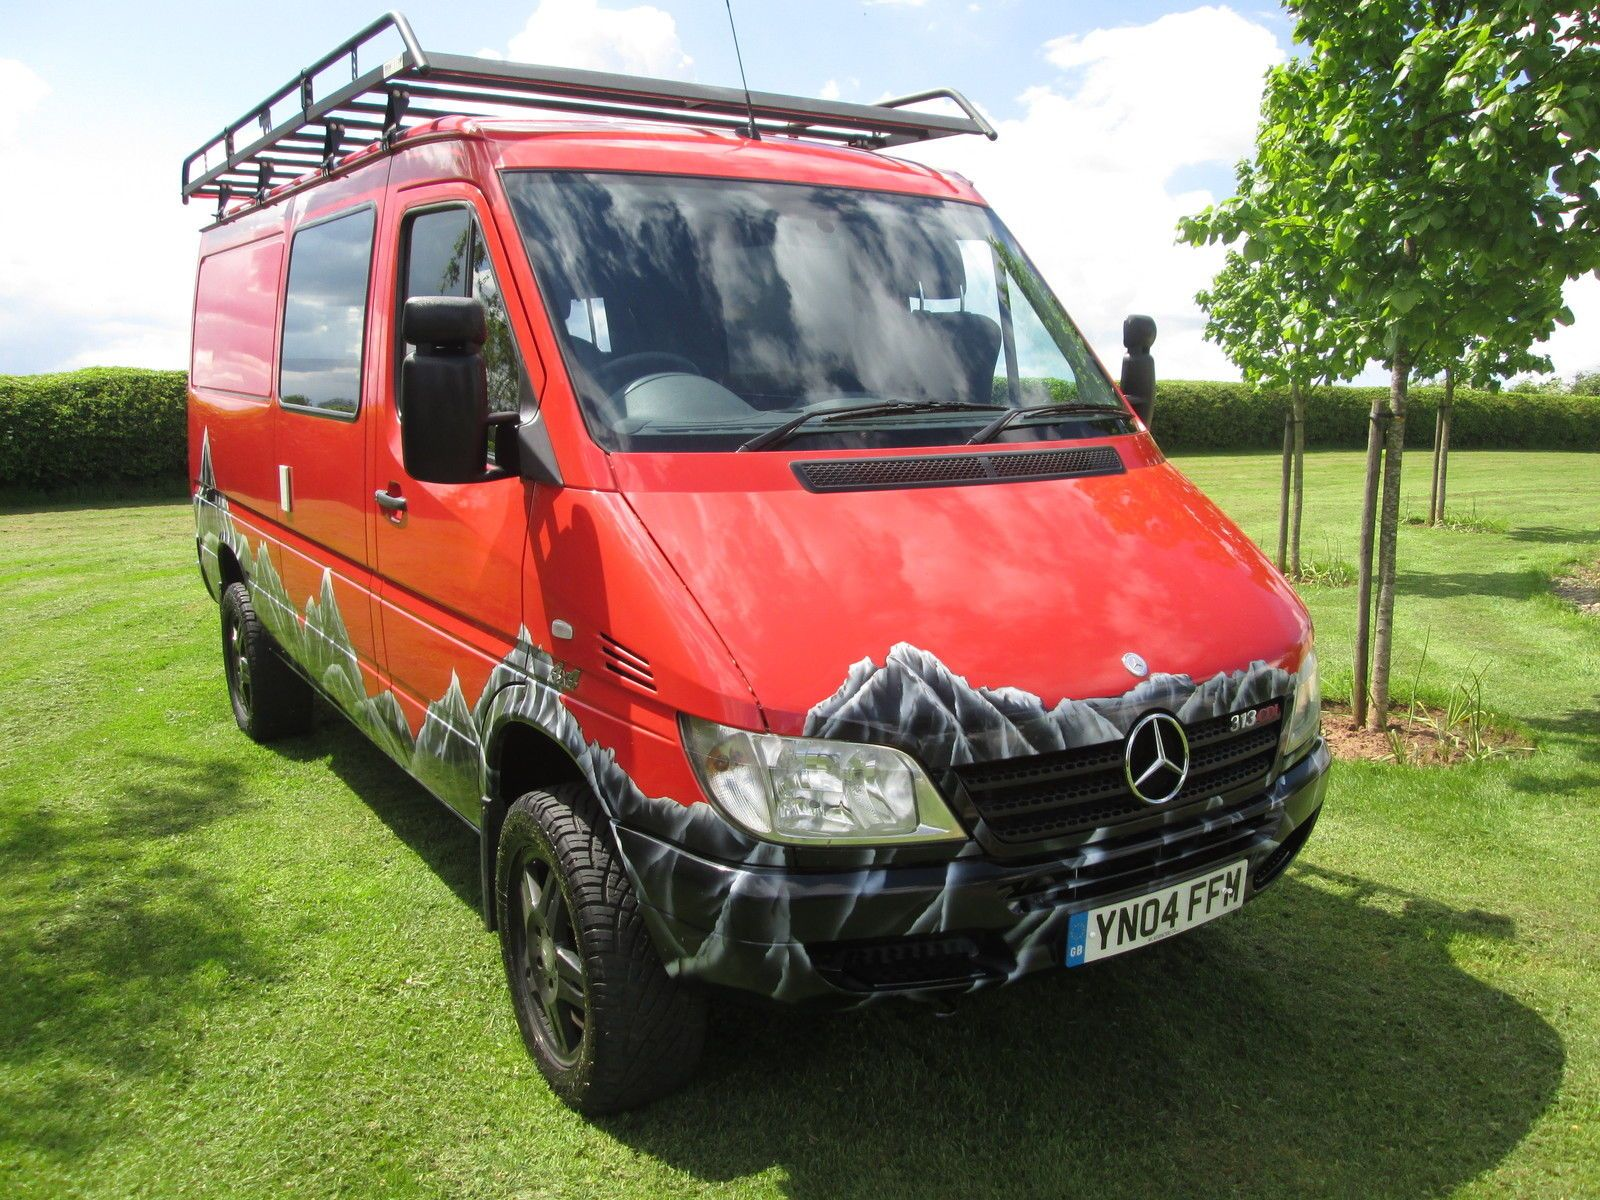 Mercedes sprinter 4x4 race camper van brand new conversion amazing mercedes sprinter 4x4 mercedes sprinter and van living